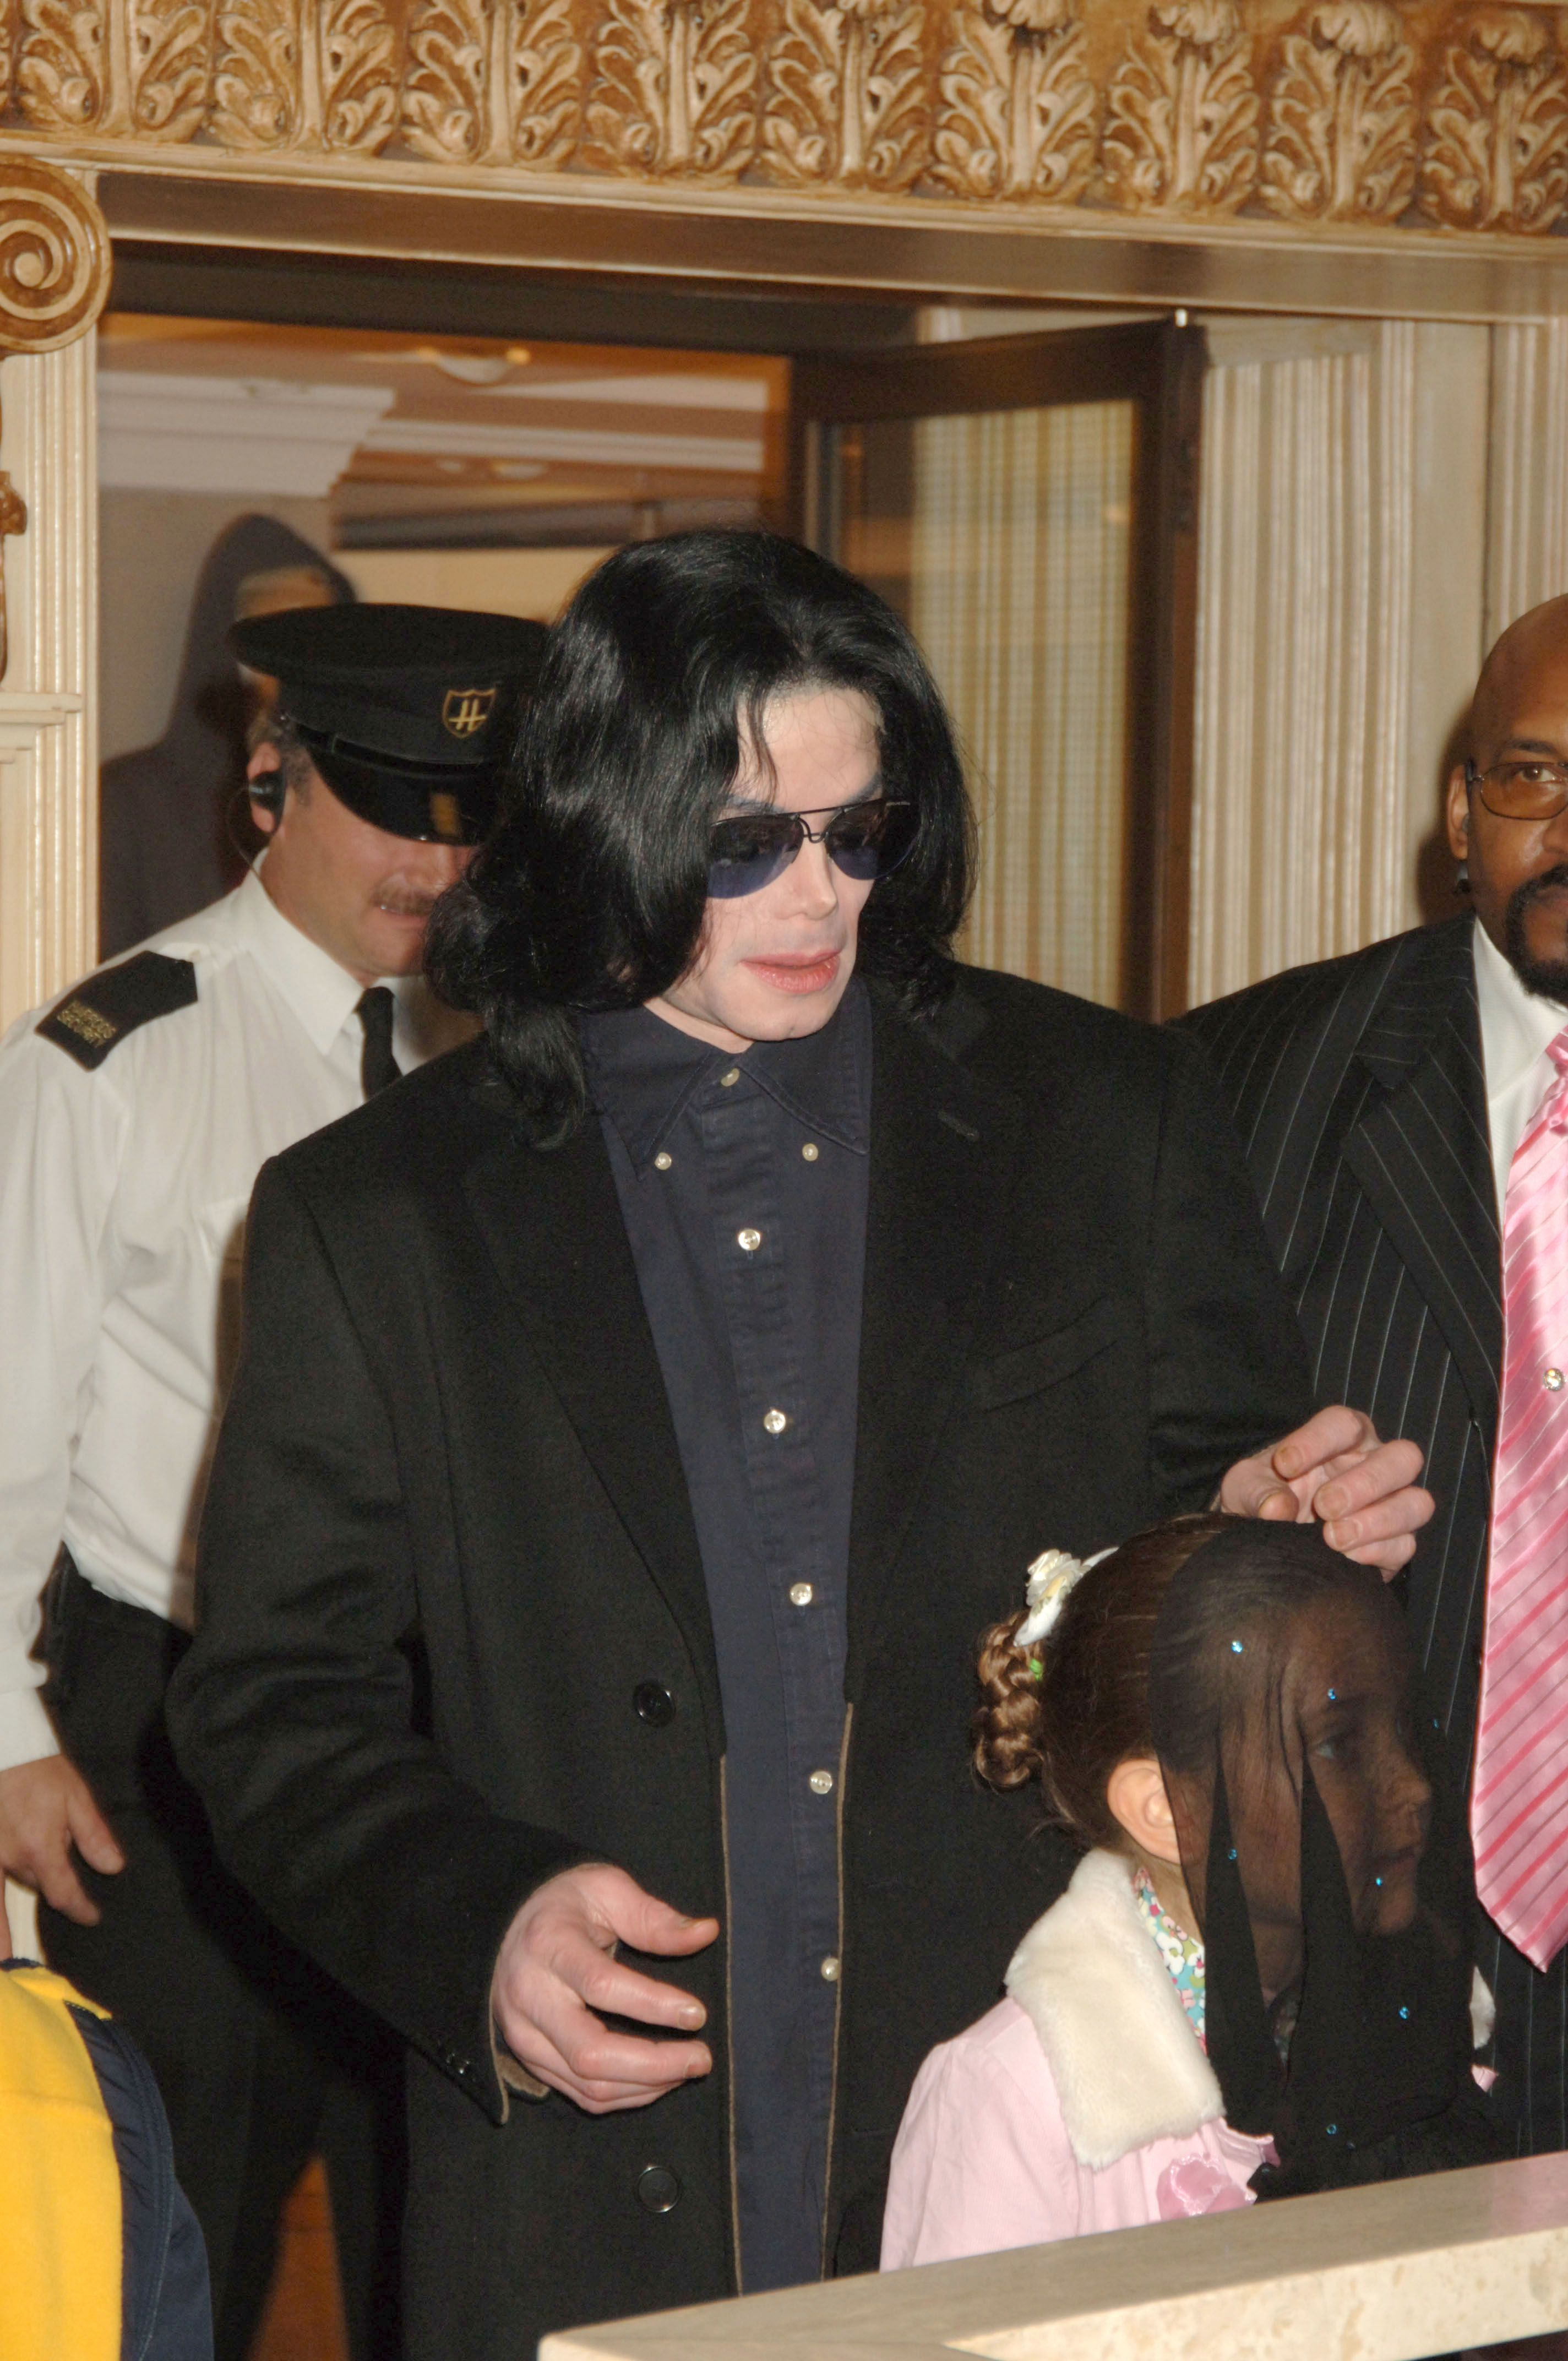 The late Michael Jackson and his daughter, Paris, as they visit Harrods October 12, 2005 in London, England. | Photo: Getty Images